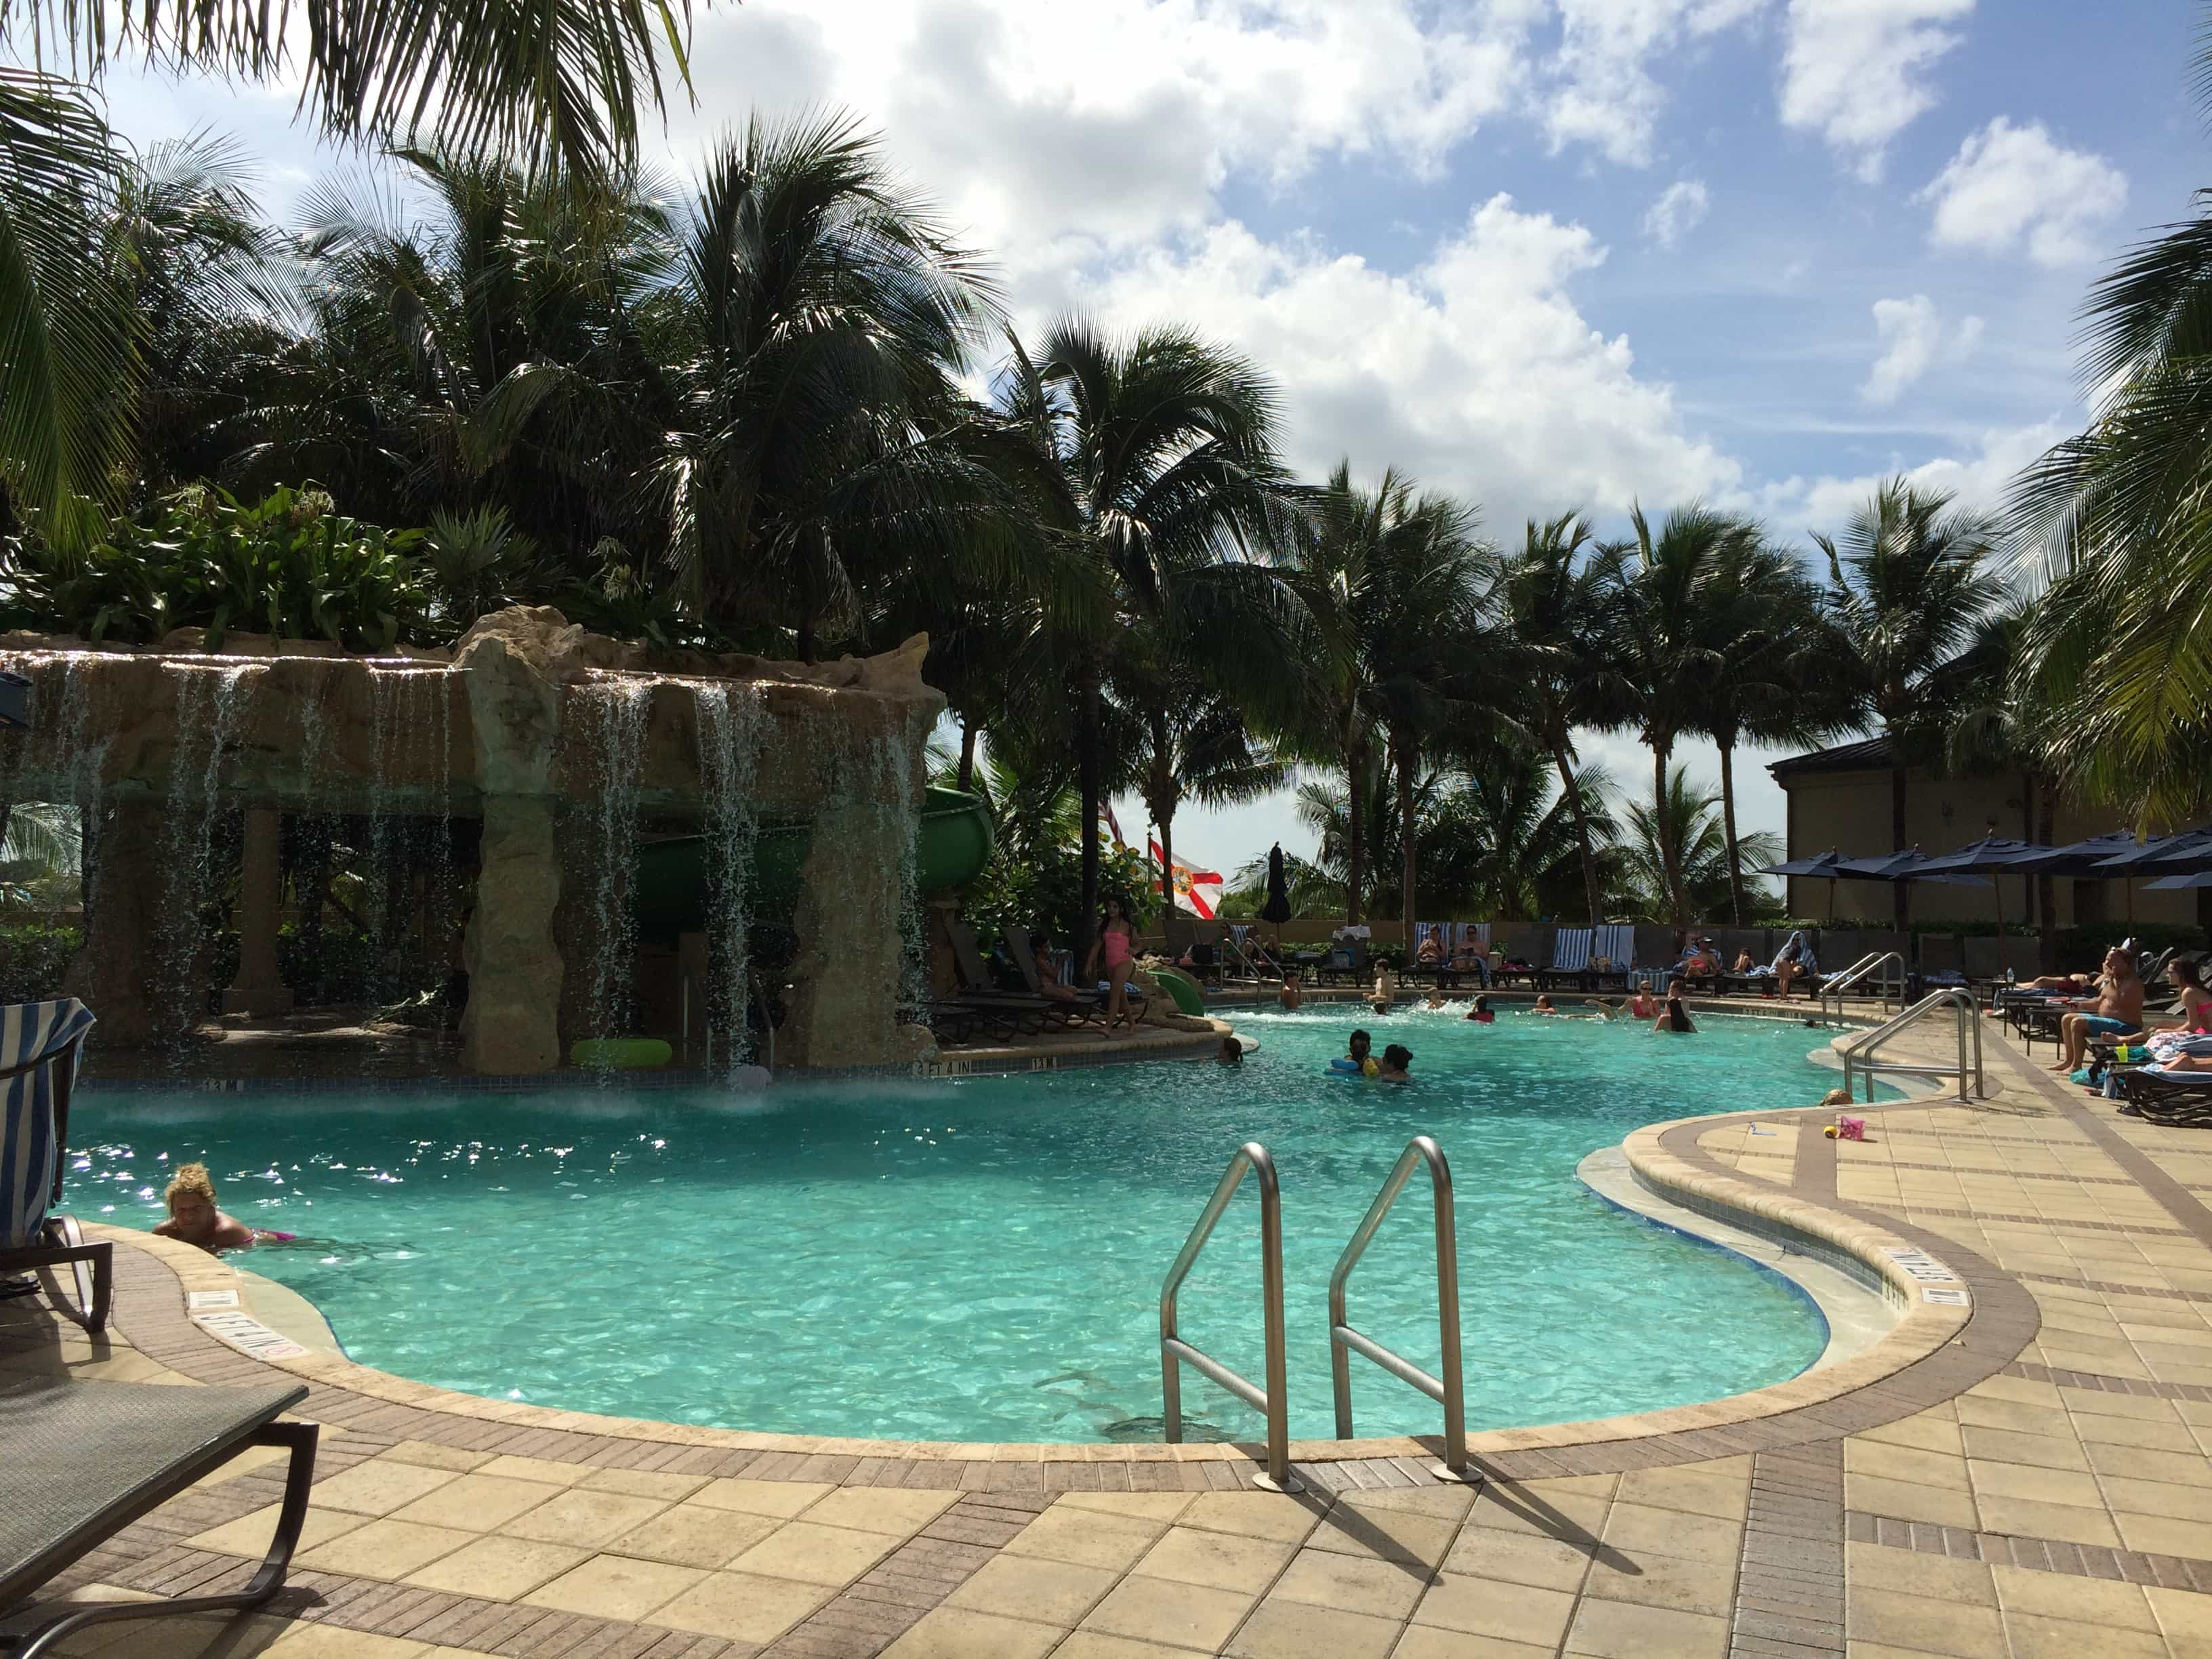 Girlfriend Getaway At Palm Beach Marriott Singer Island Florida And The Gardens Mall Kim And